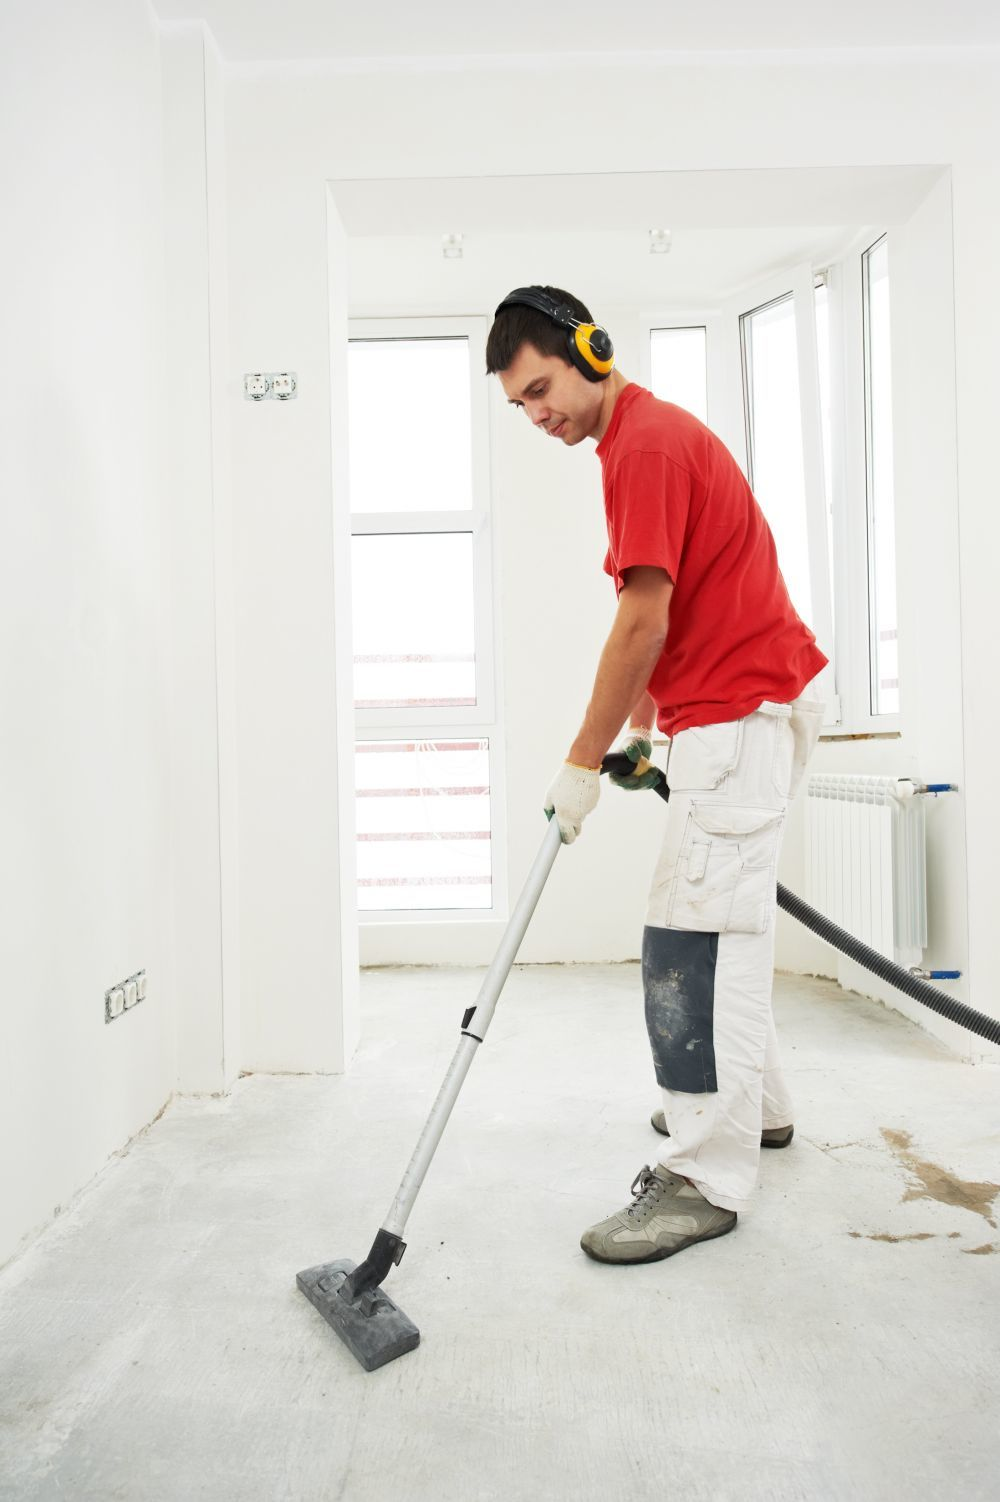 Commercial cleaning services in Tauranga performing a builders clean